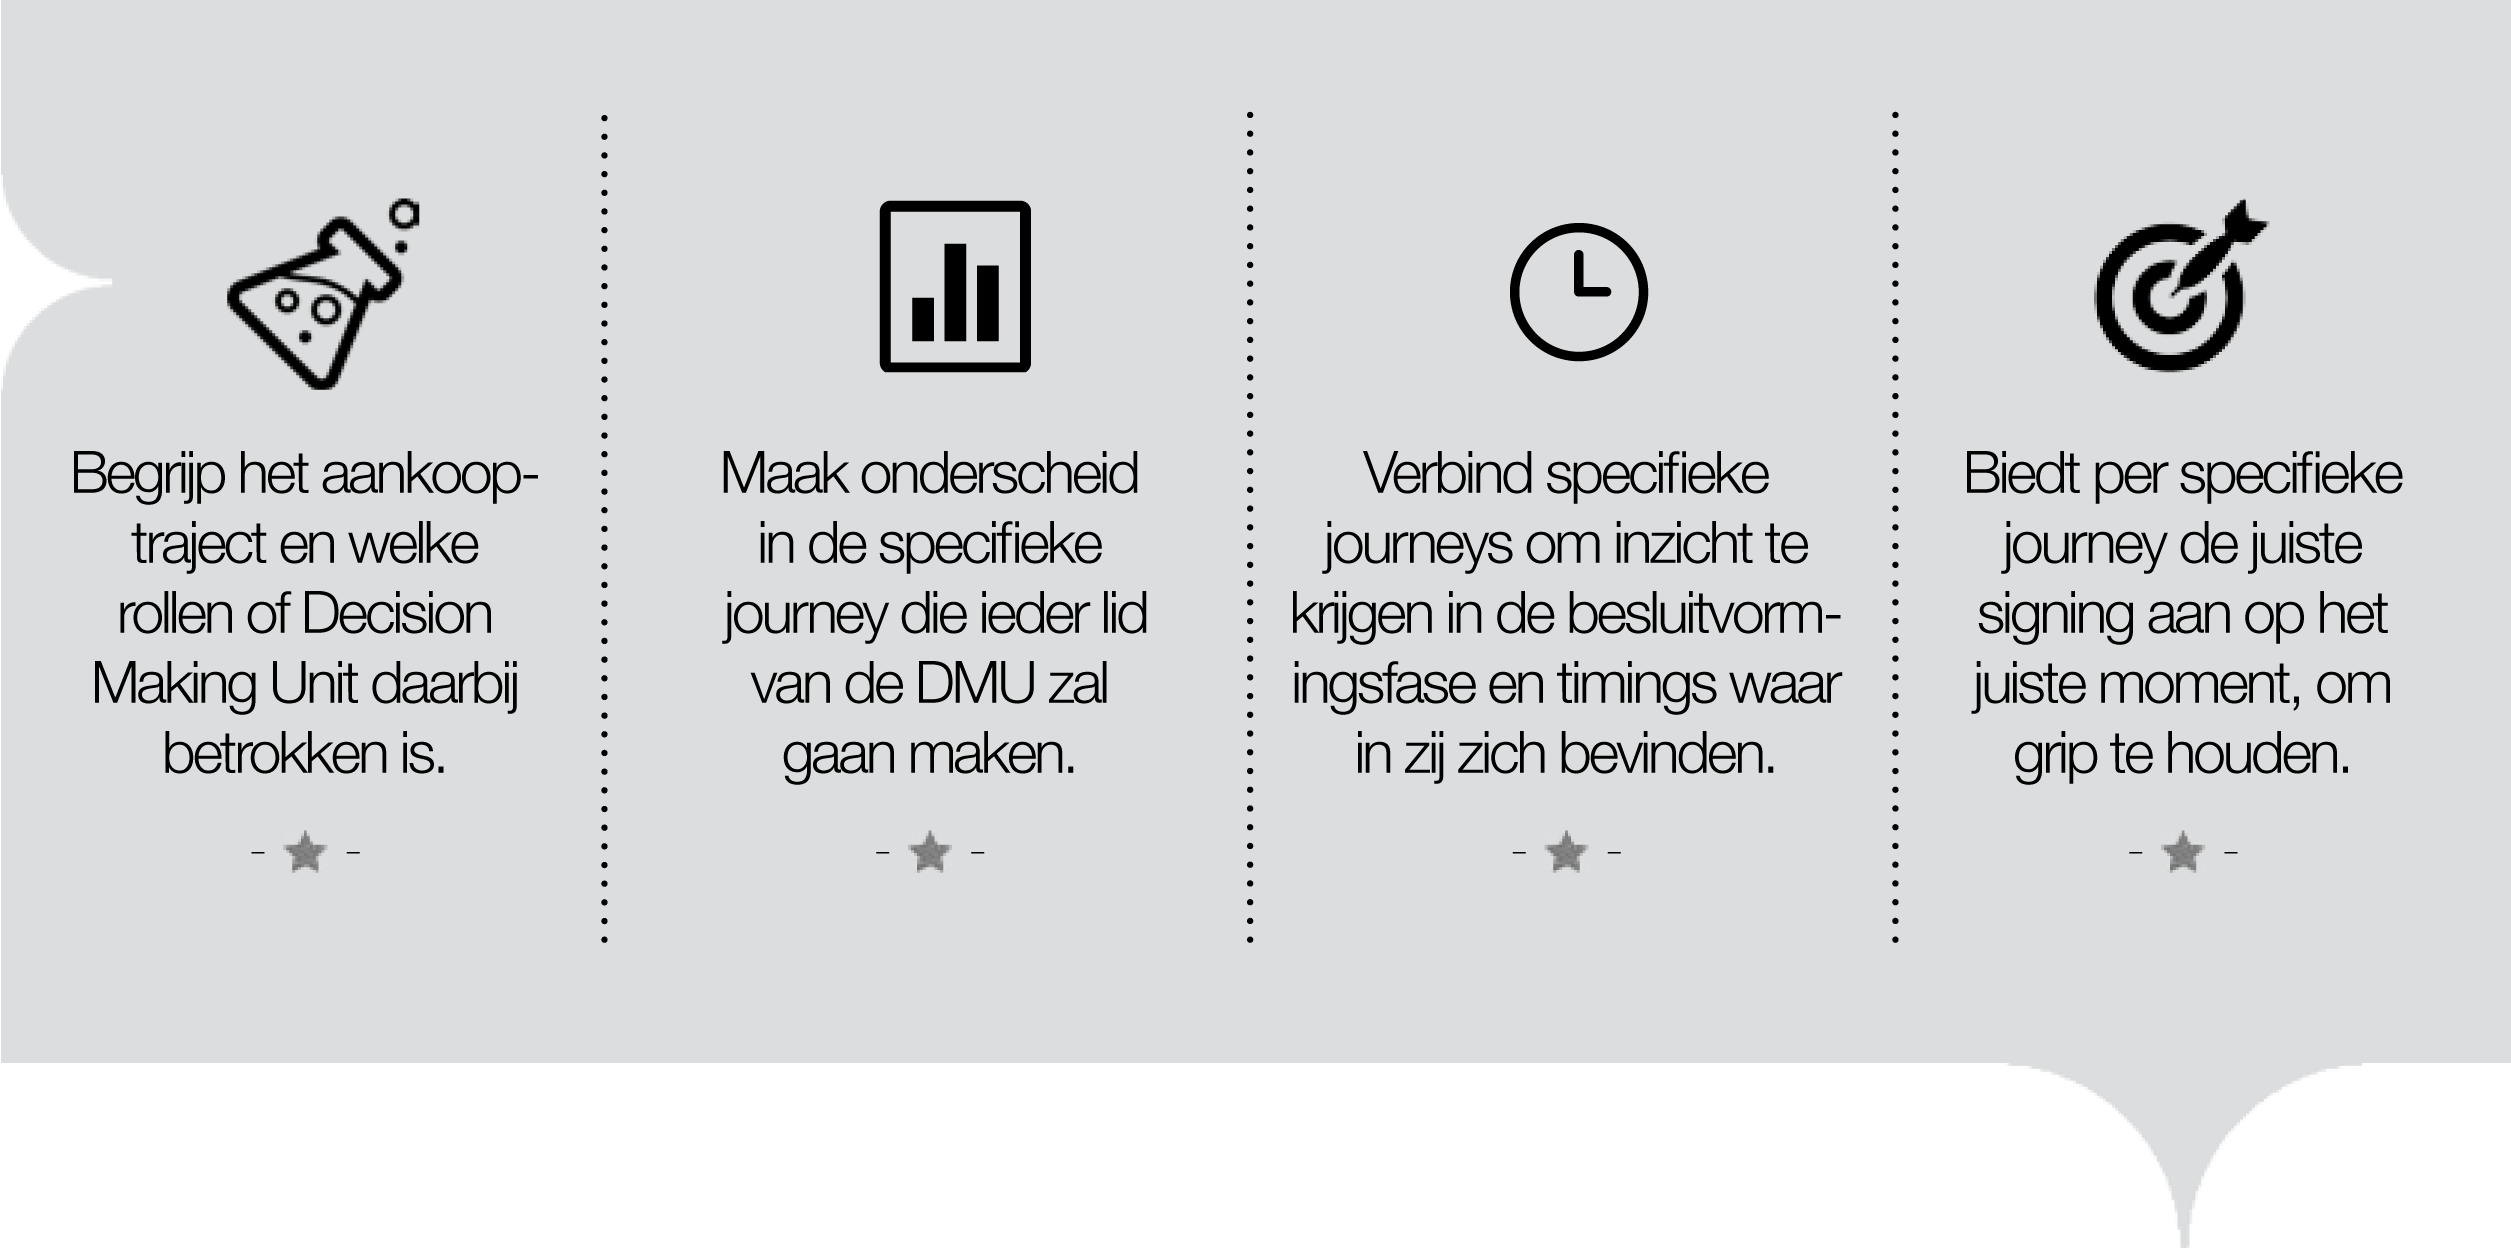 zomerinhuis.nlcommunicatie+score_buyer_journeys